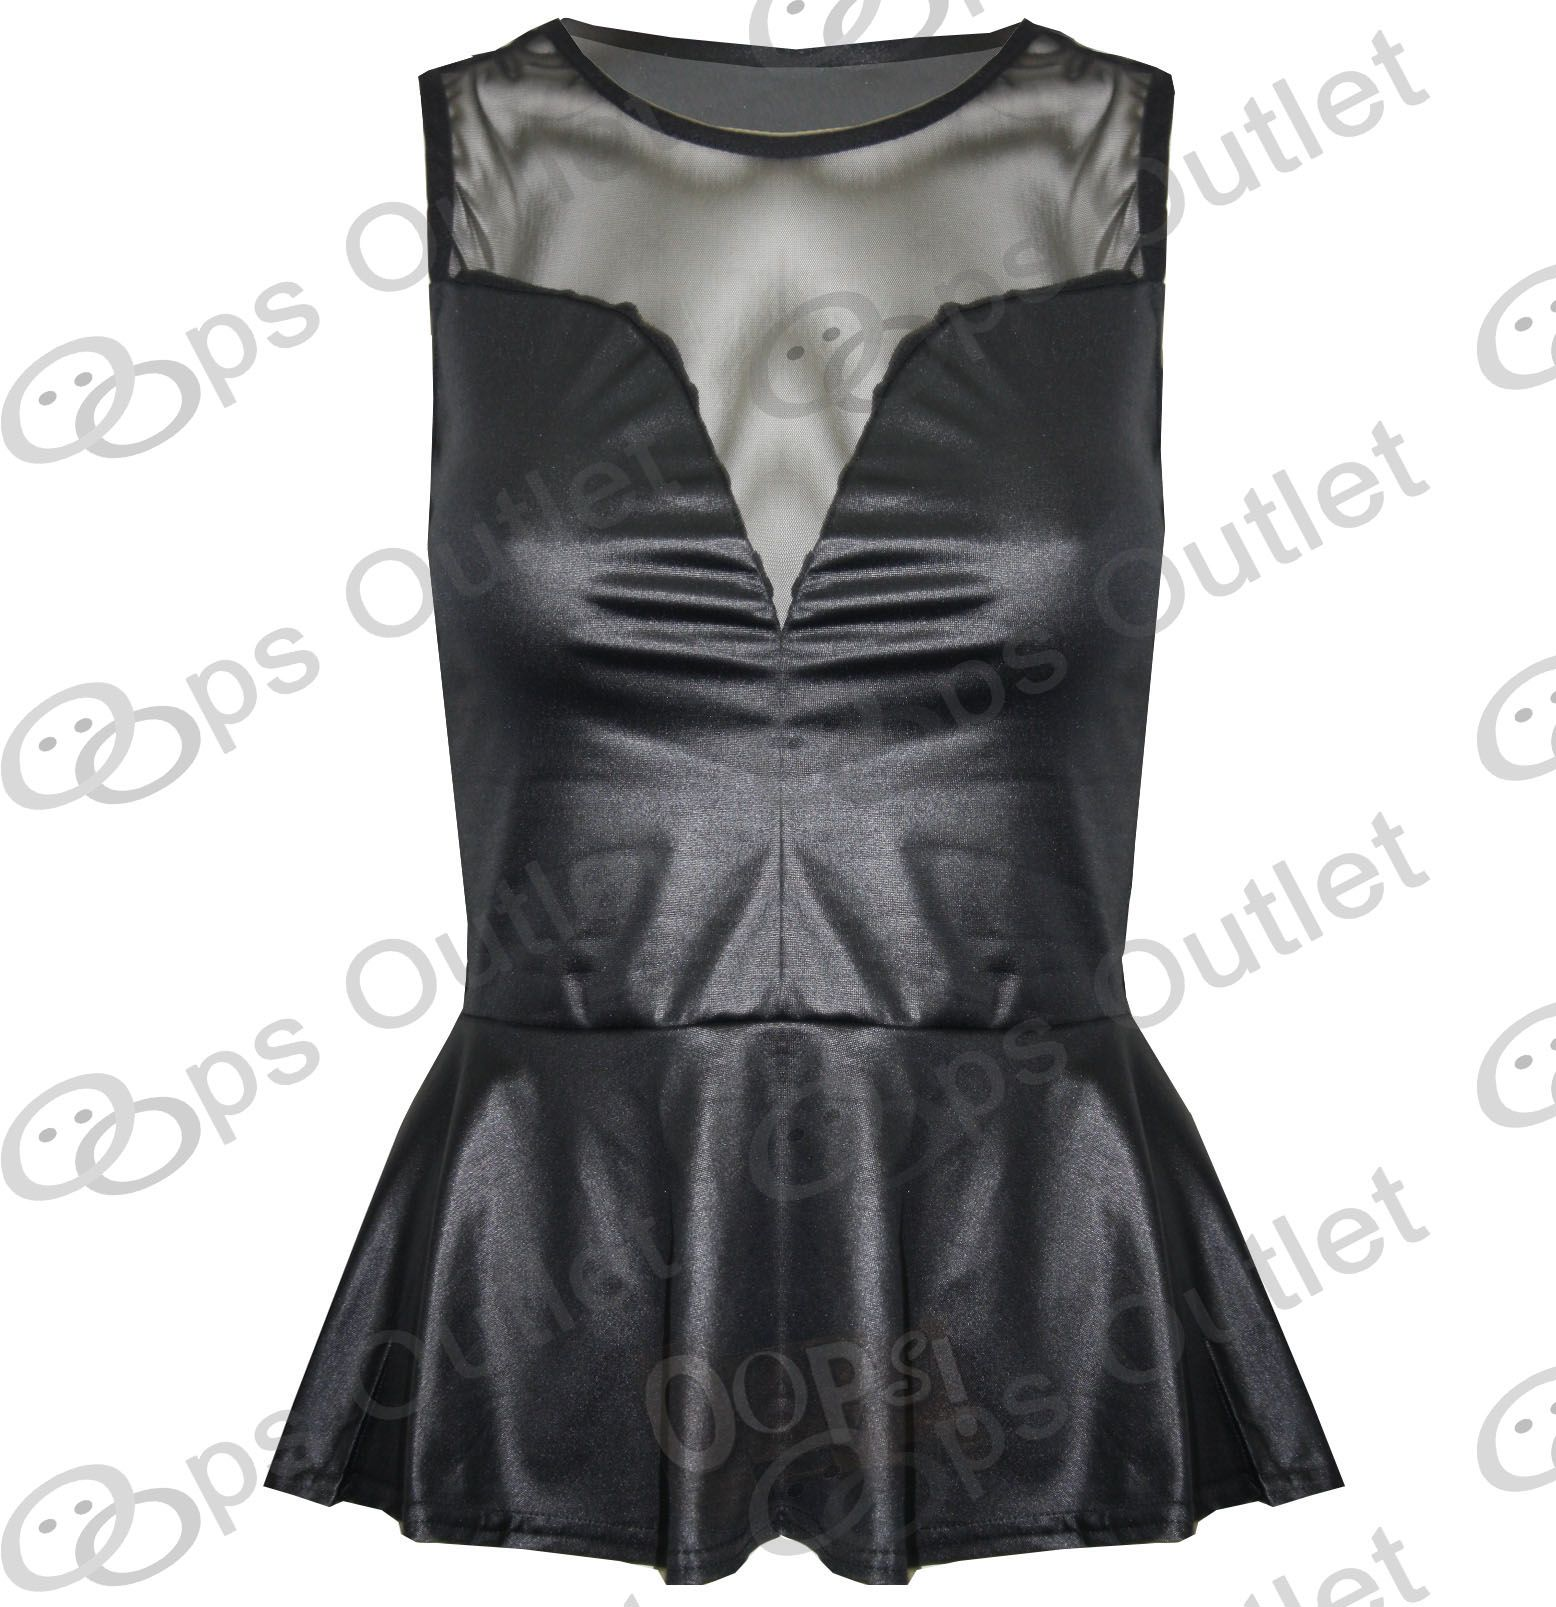 Womens-Wetlook-PVC-Leather-Ladies-Bodycon-Tunic-Dress-Peplum-Top-Leggings-Skirt